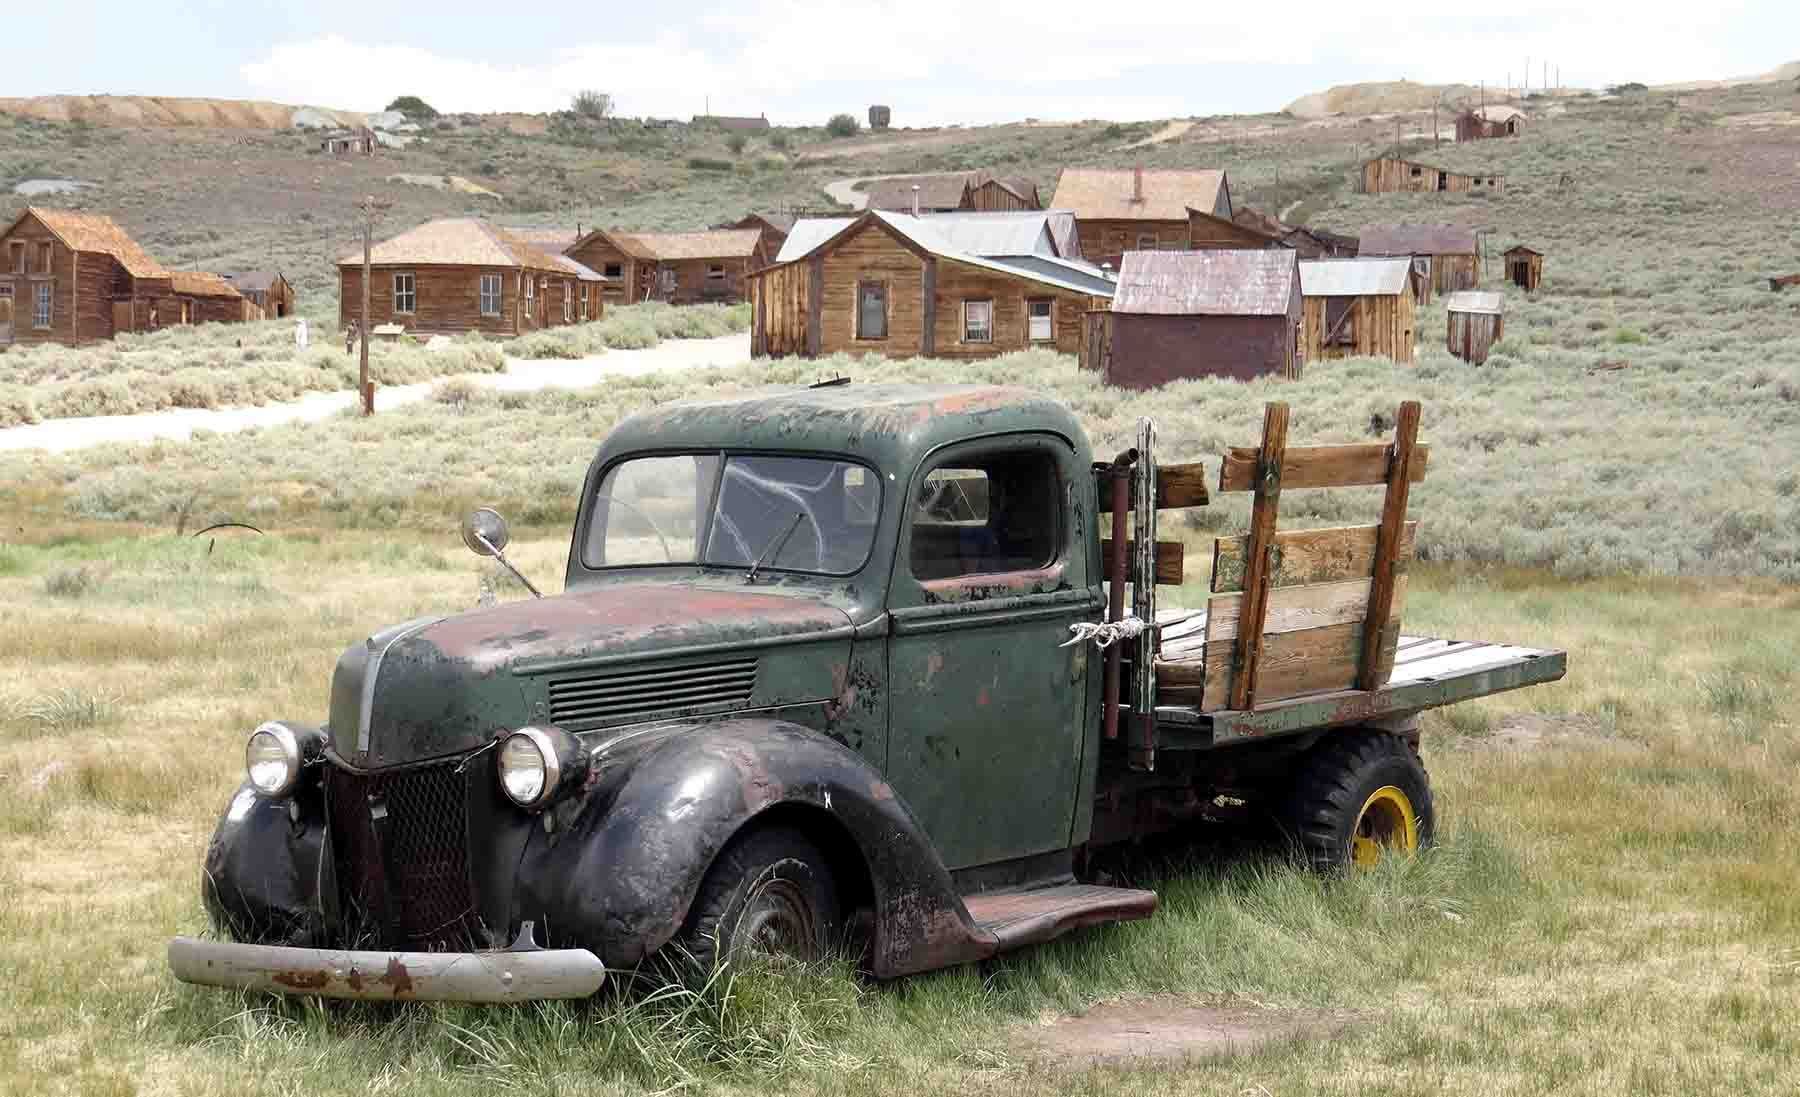 Abandoned truck at Bodie State Historic Park